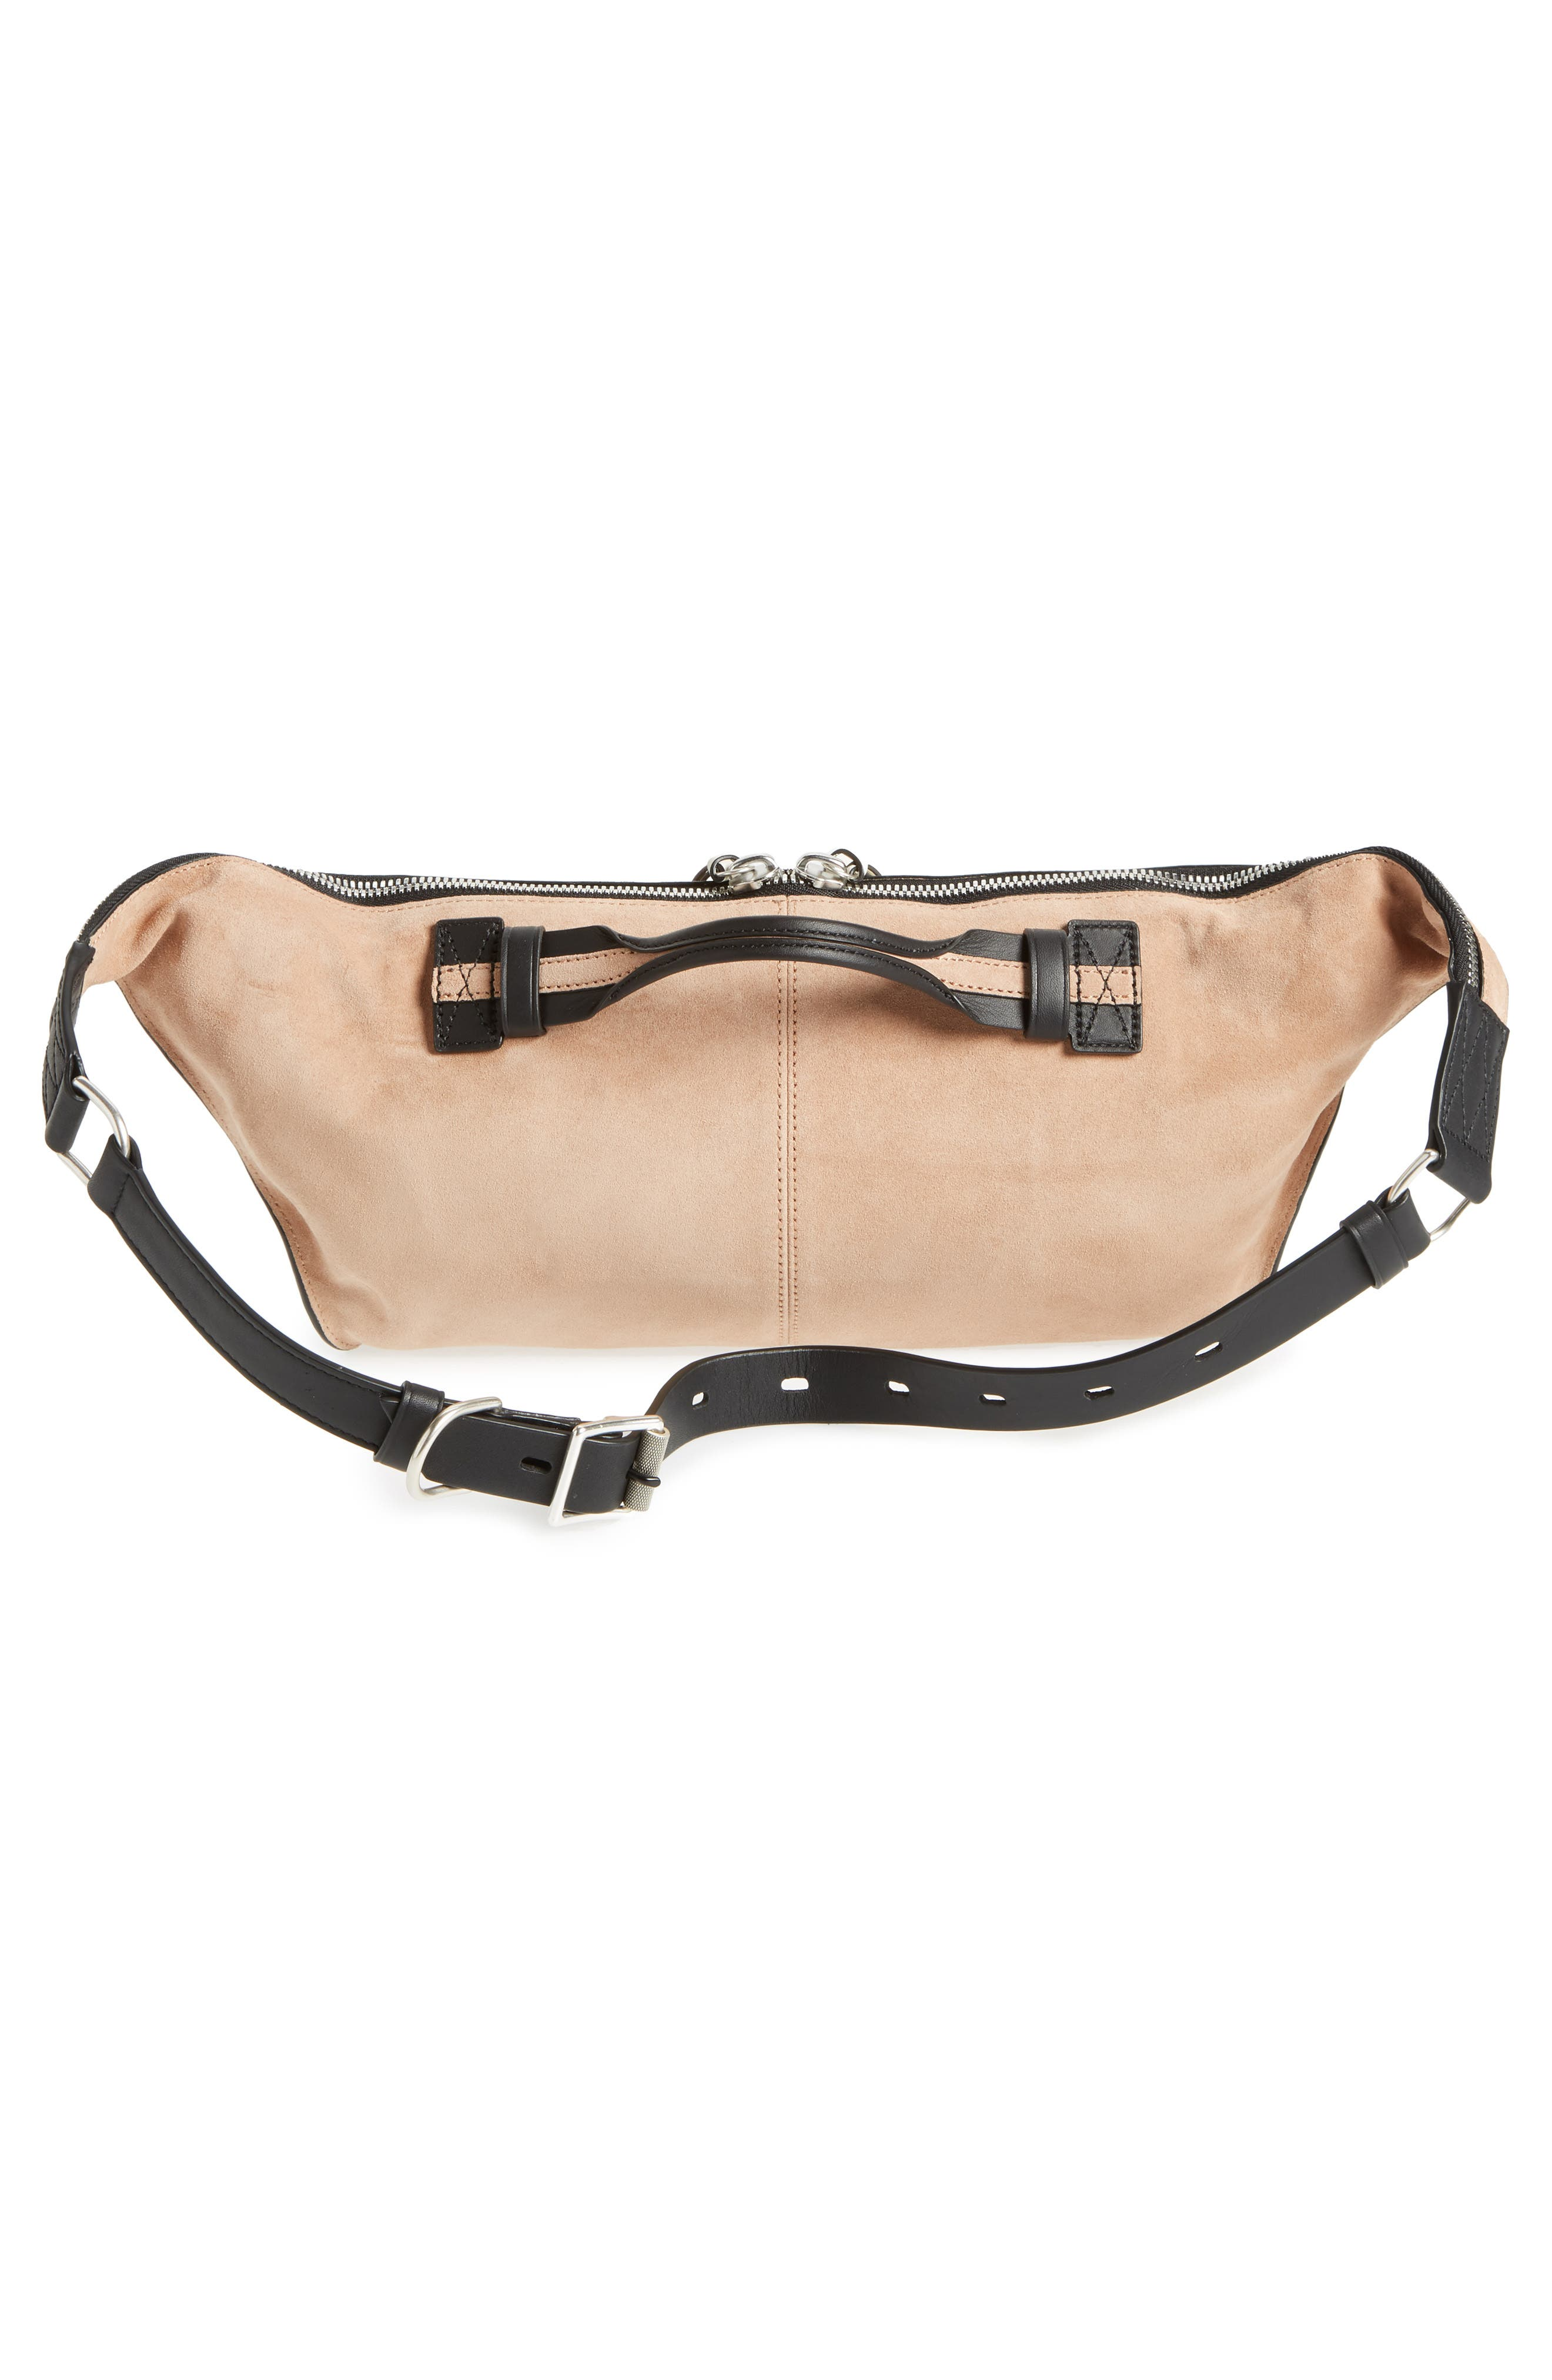 Elliot Leather Fanny Pack,                             Alternate thumbnail 4, color,                             Nude Suede